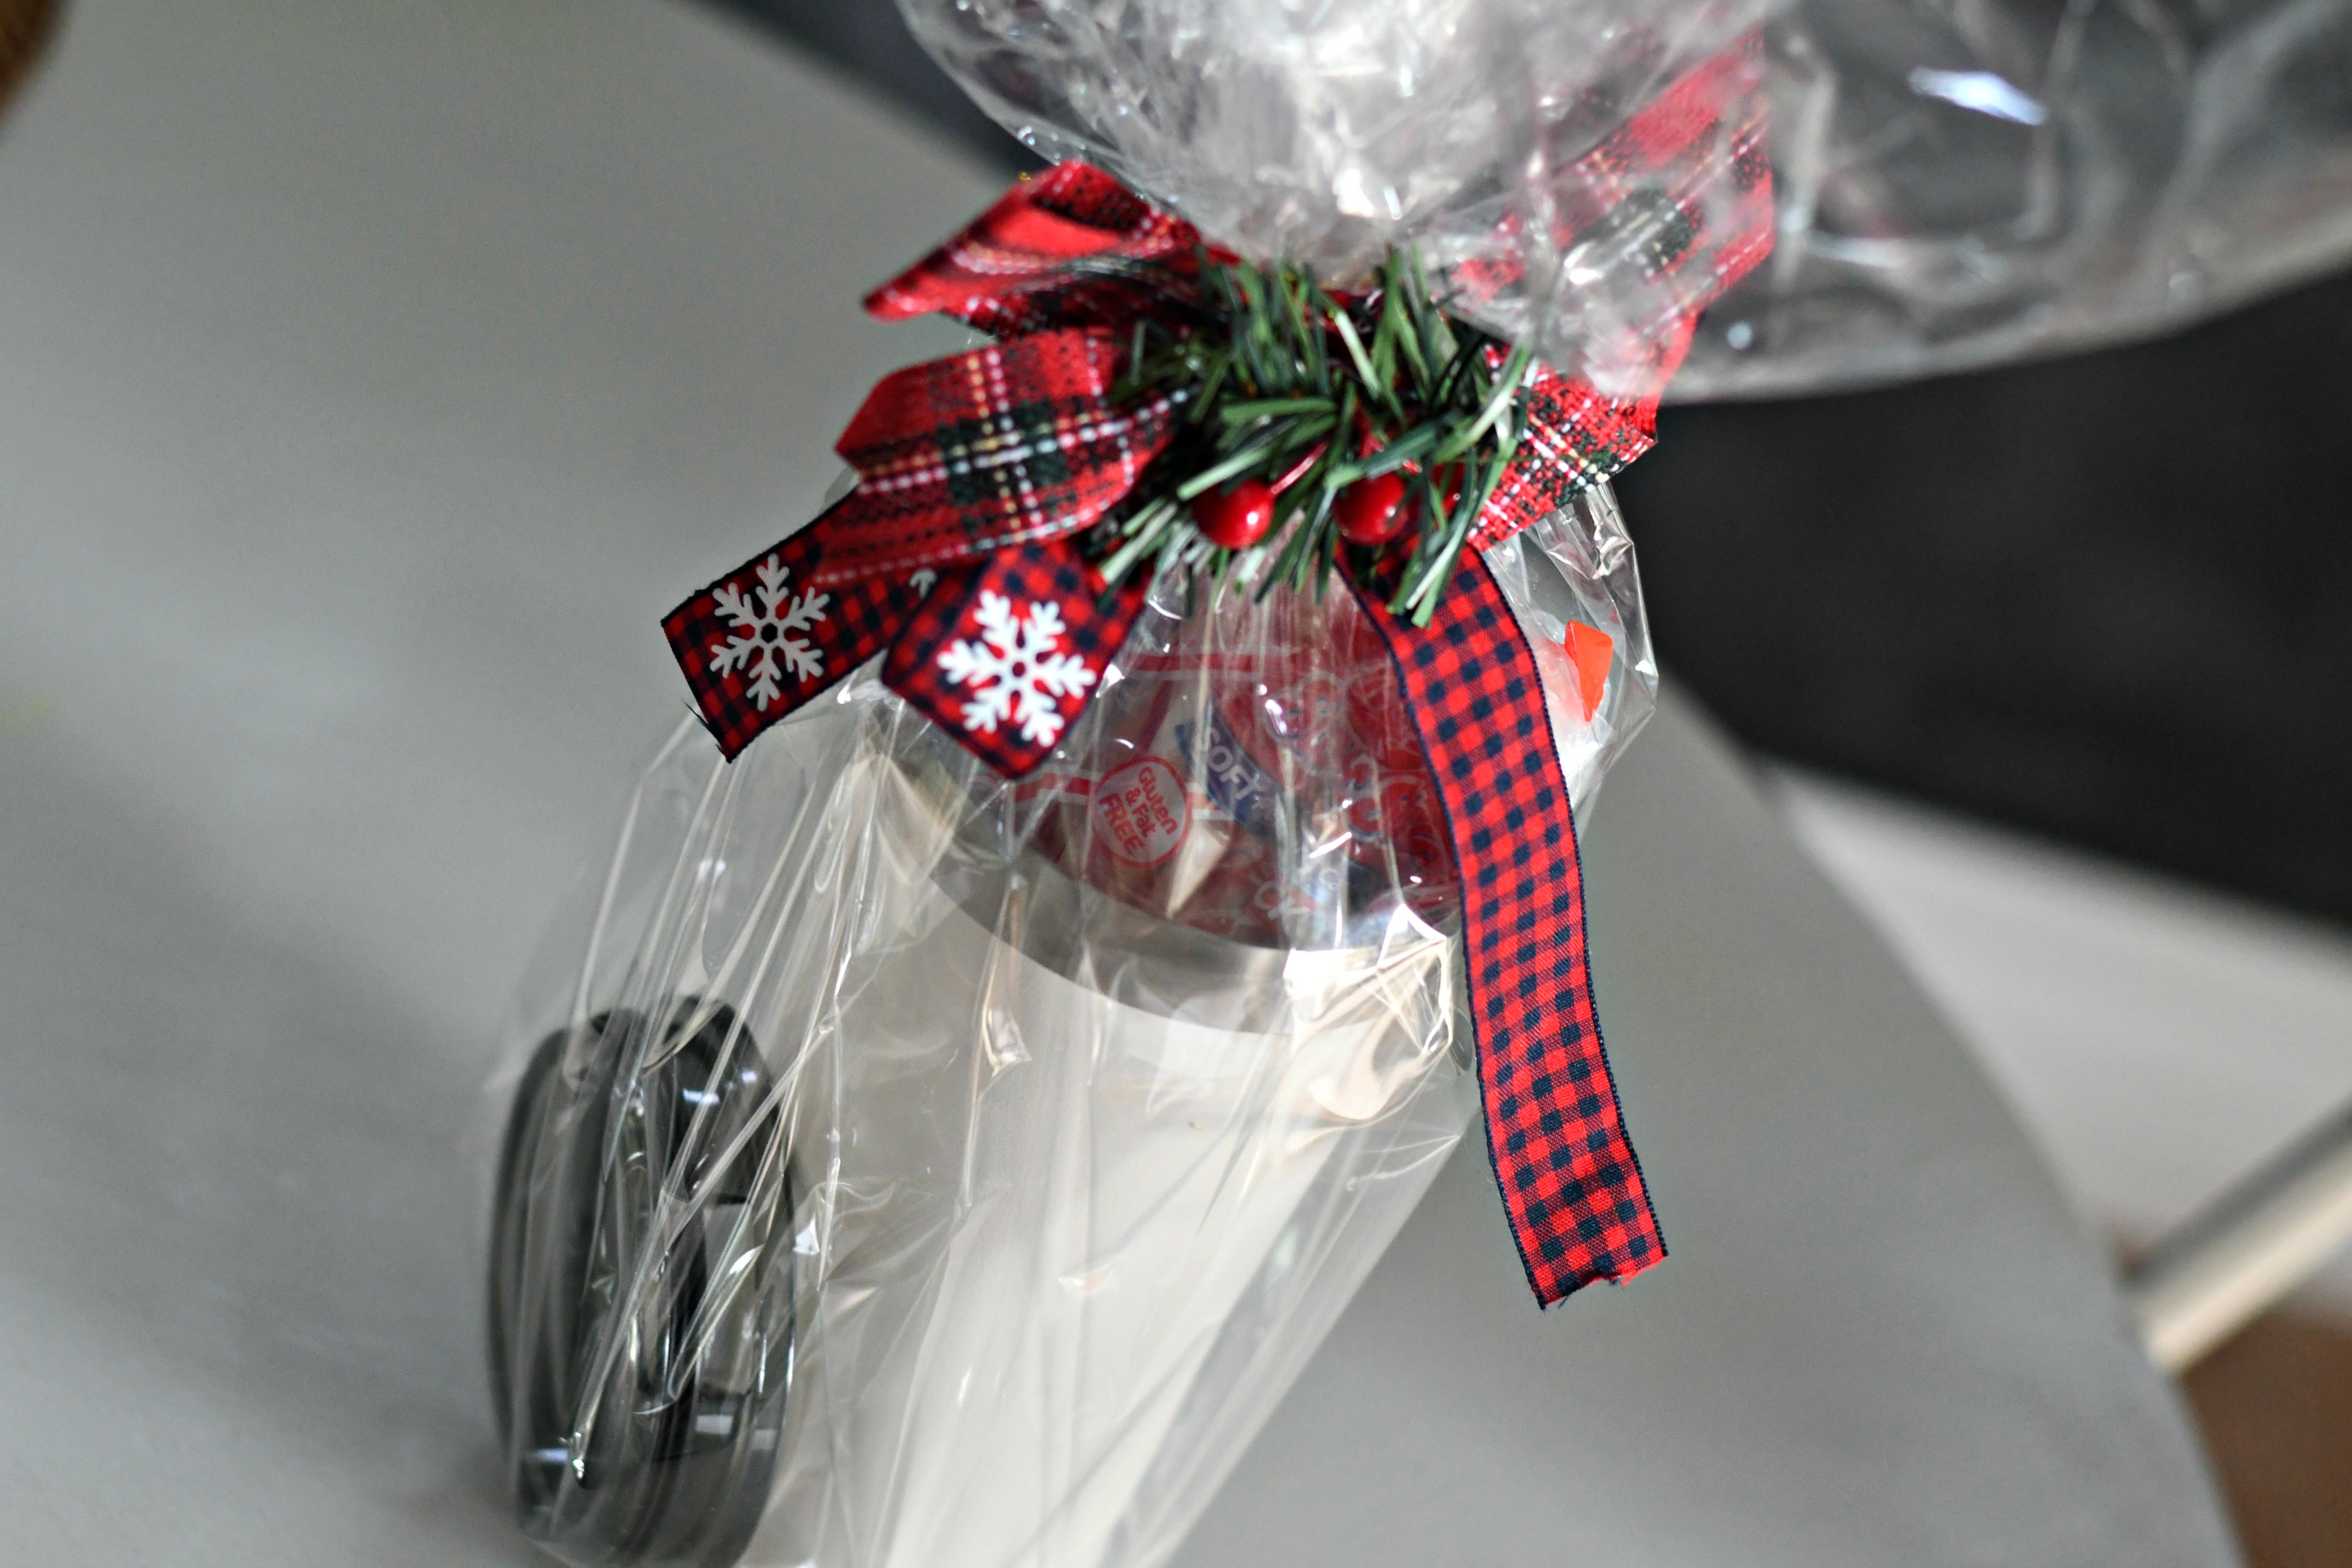 DIY Tumbler Gift basket ideas – Hot cocoa enthusiast gift contents in the tumbler